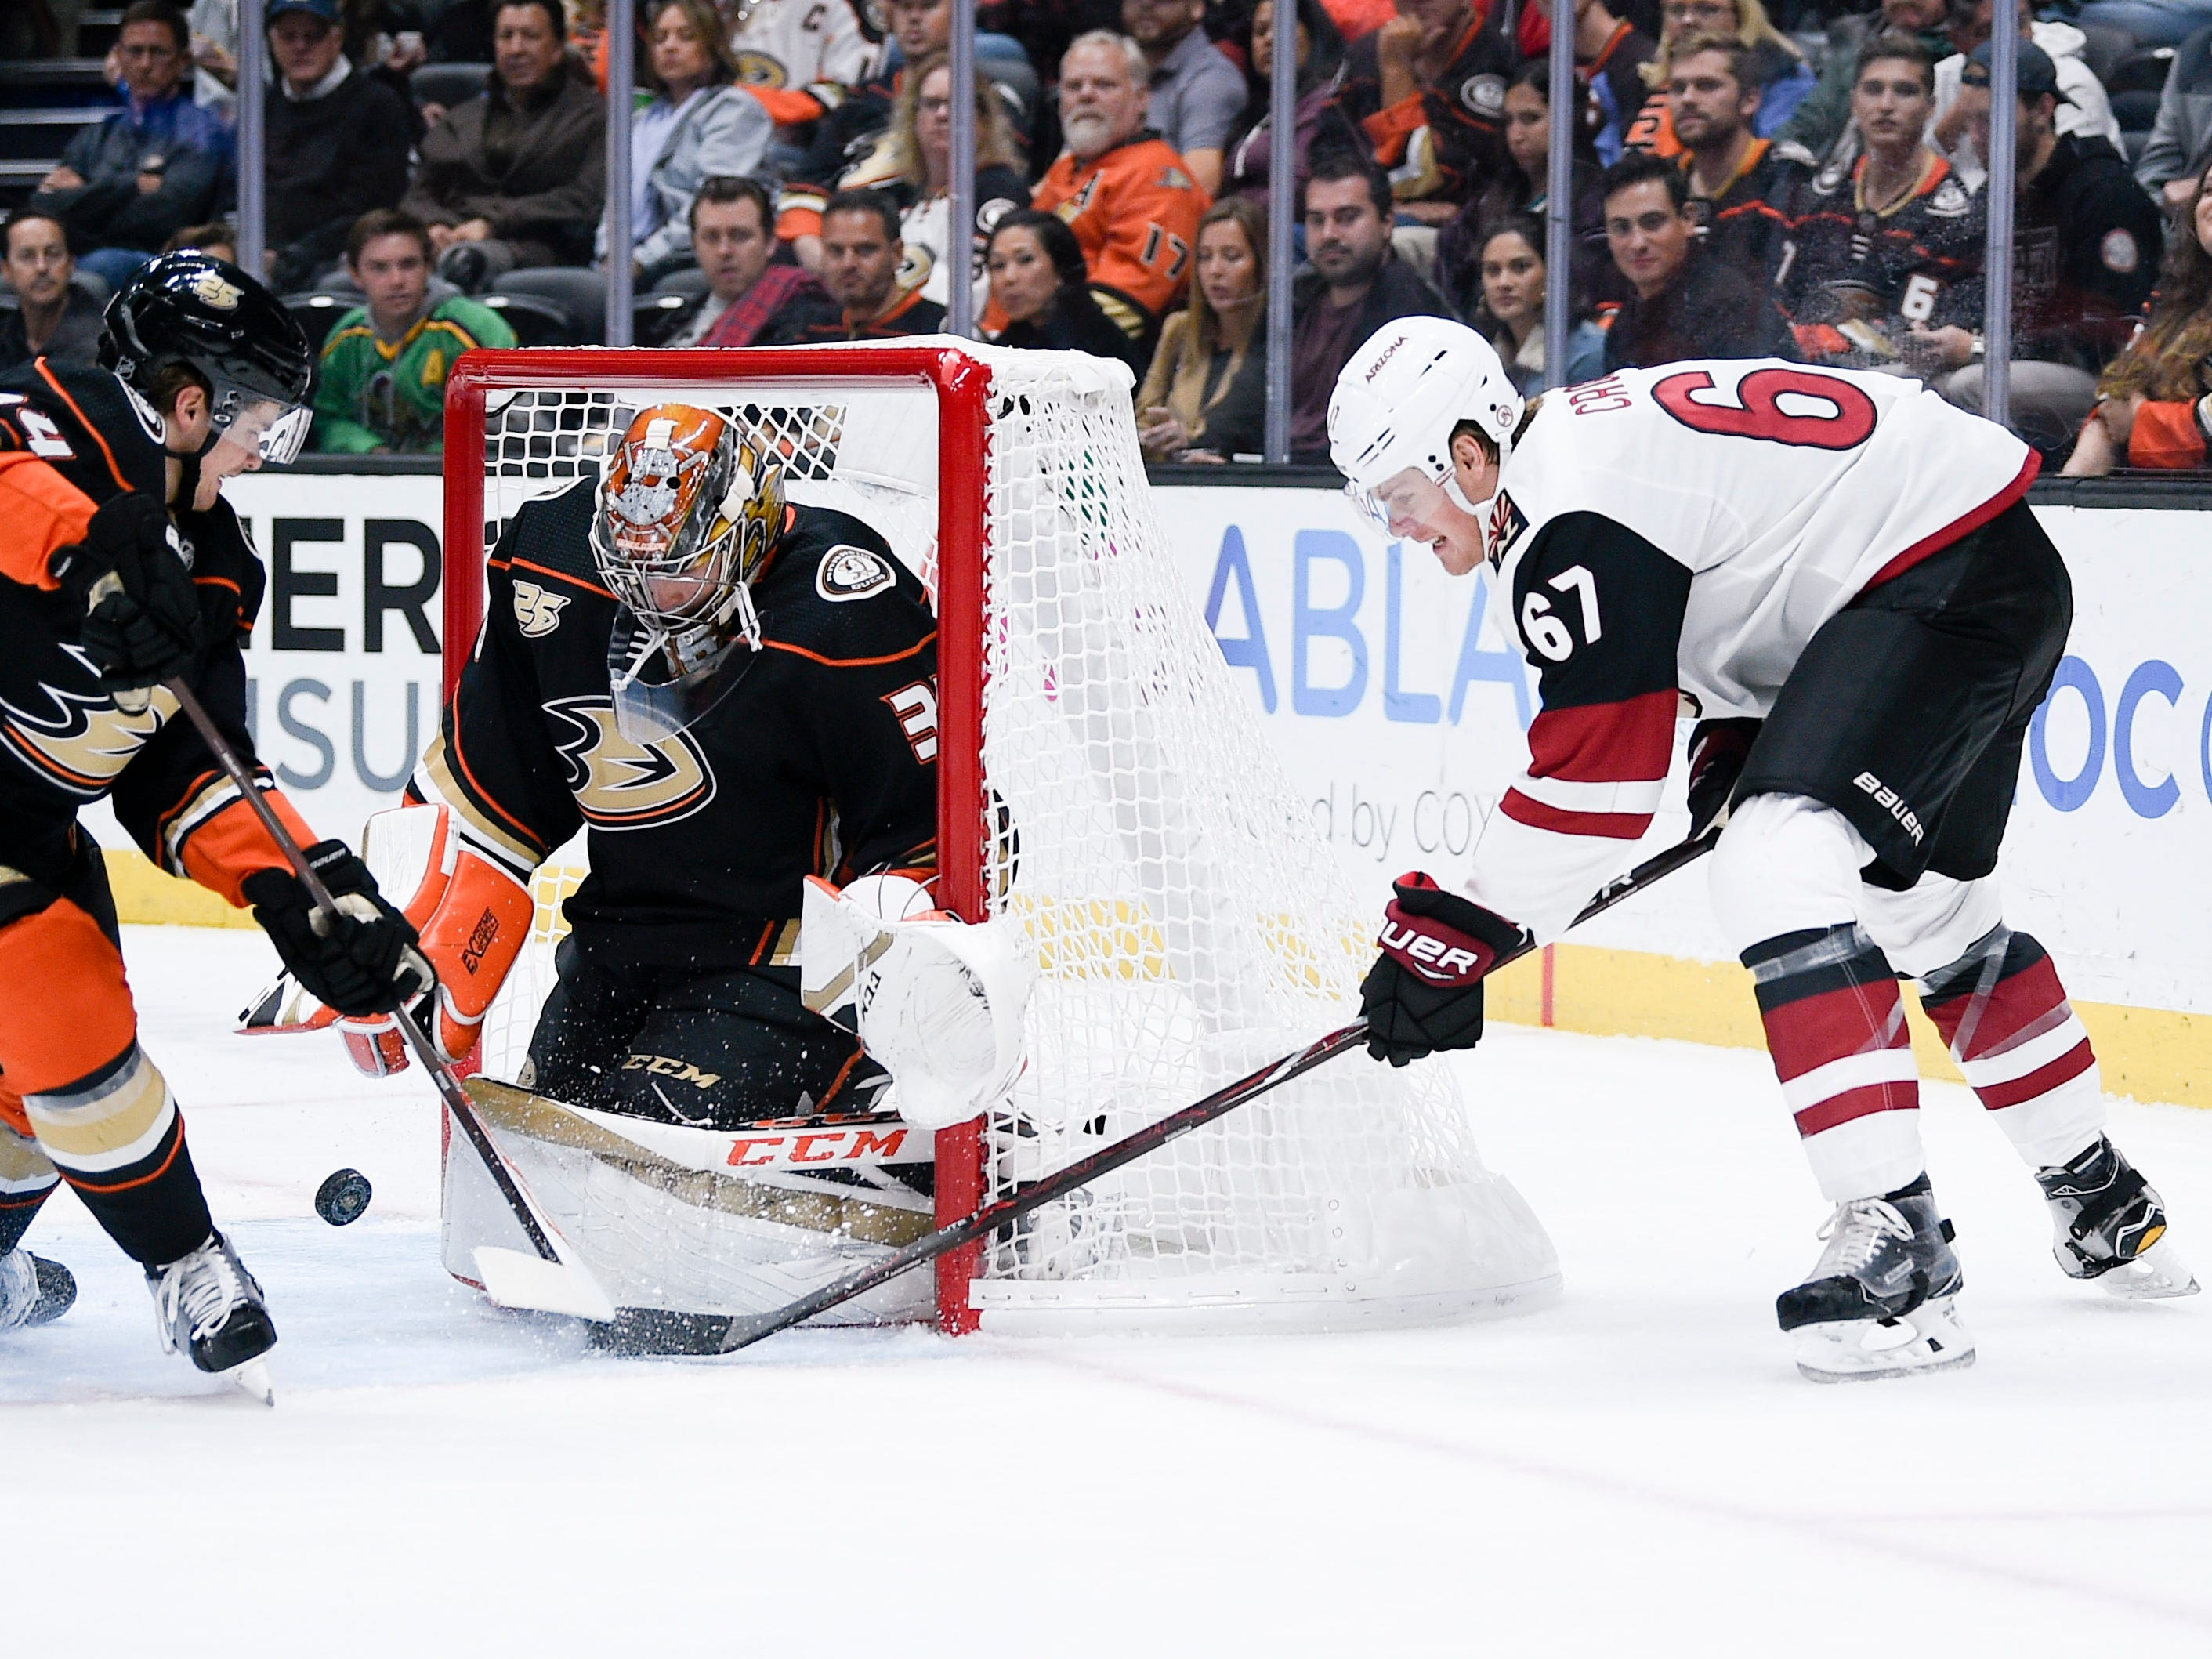 Oct 10, 2018; Anaheim, CA, USA; Anaheim Ducks goalie John Gibson (36) makes a save off a shot by Arizona Coyotes left wing Lawson Crouse (67) during the first period at Honda Center.